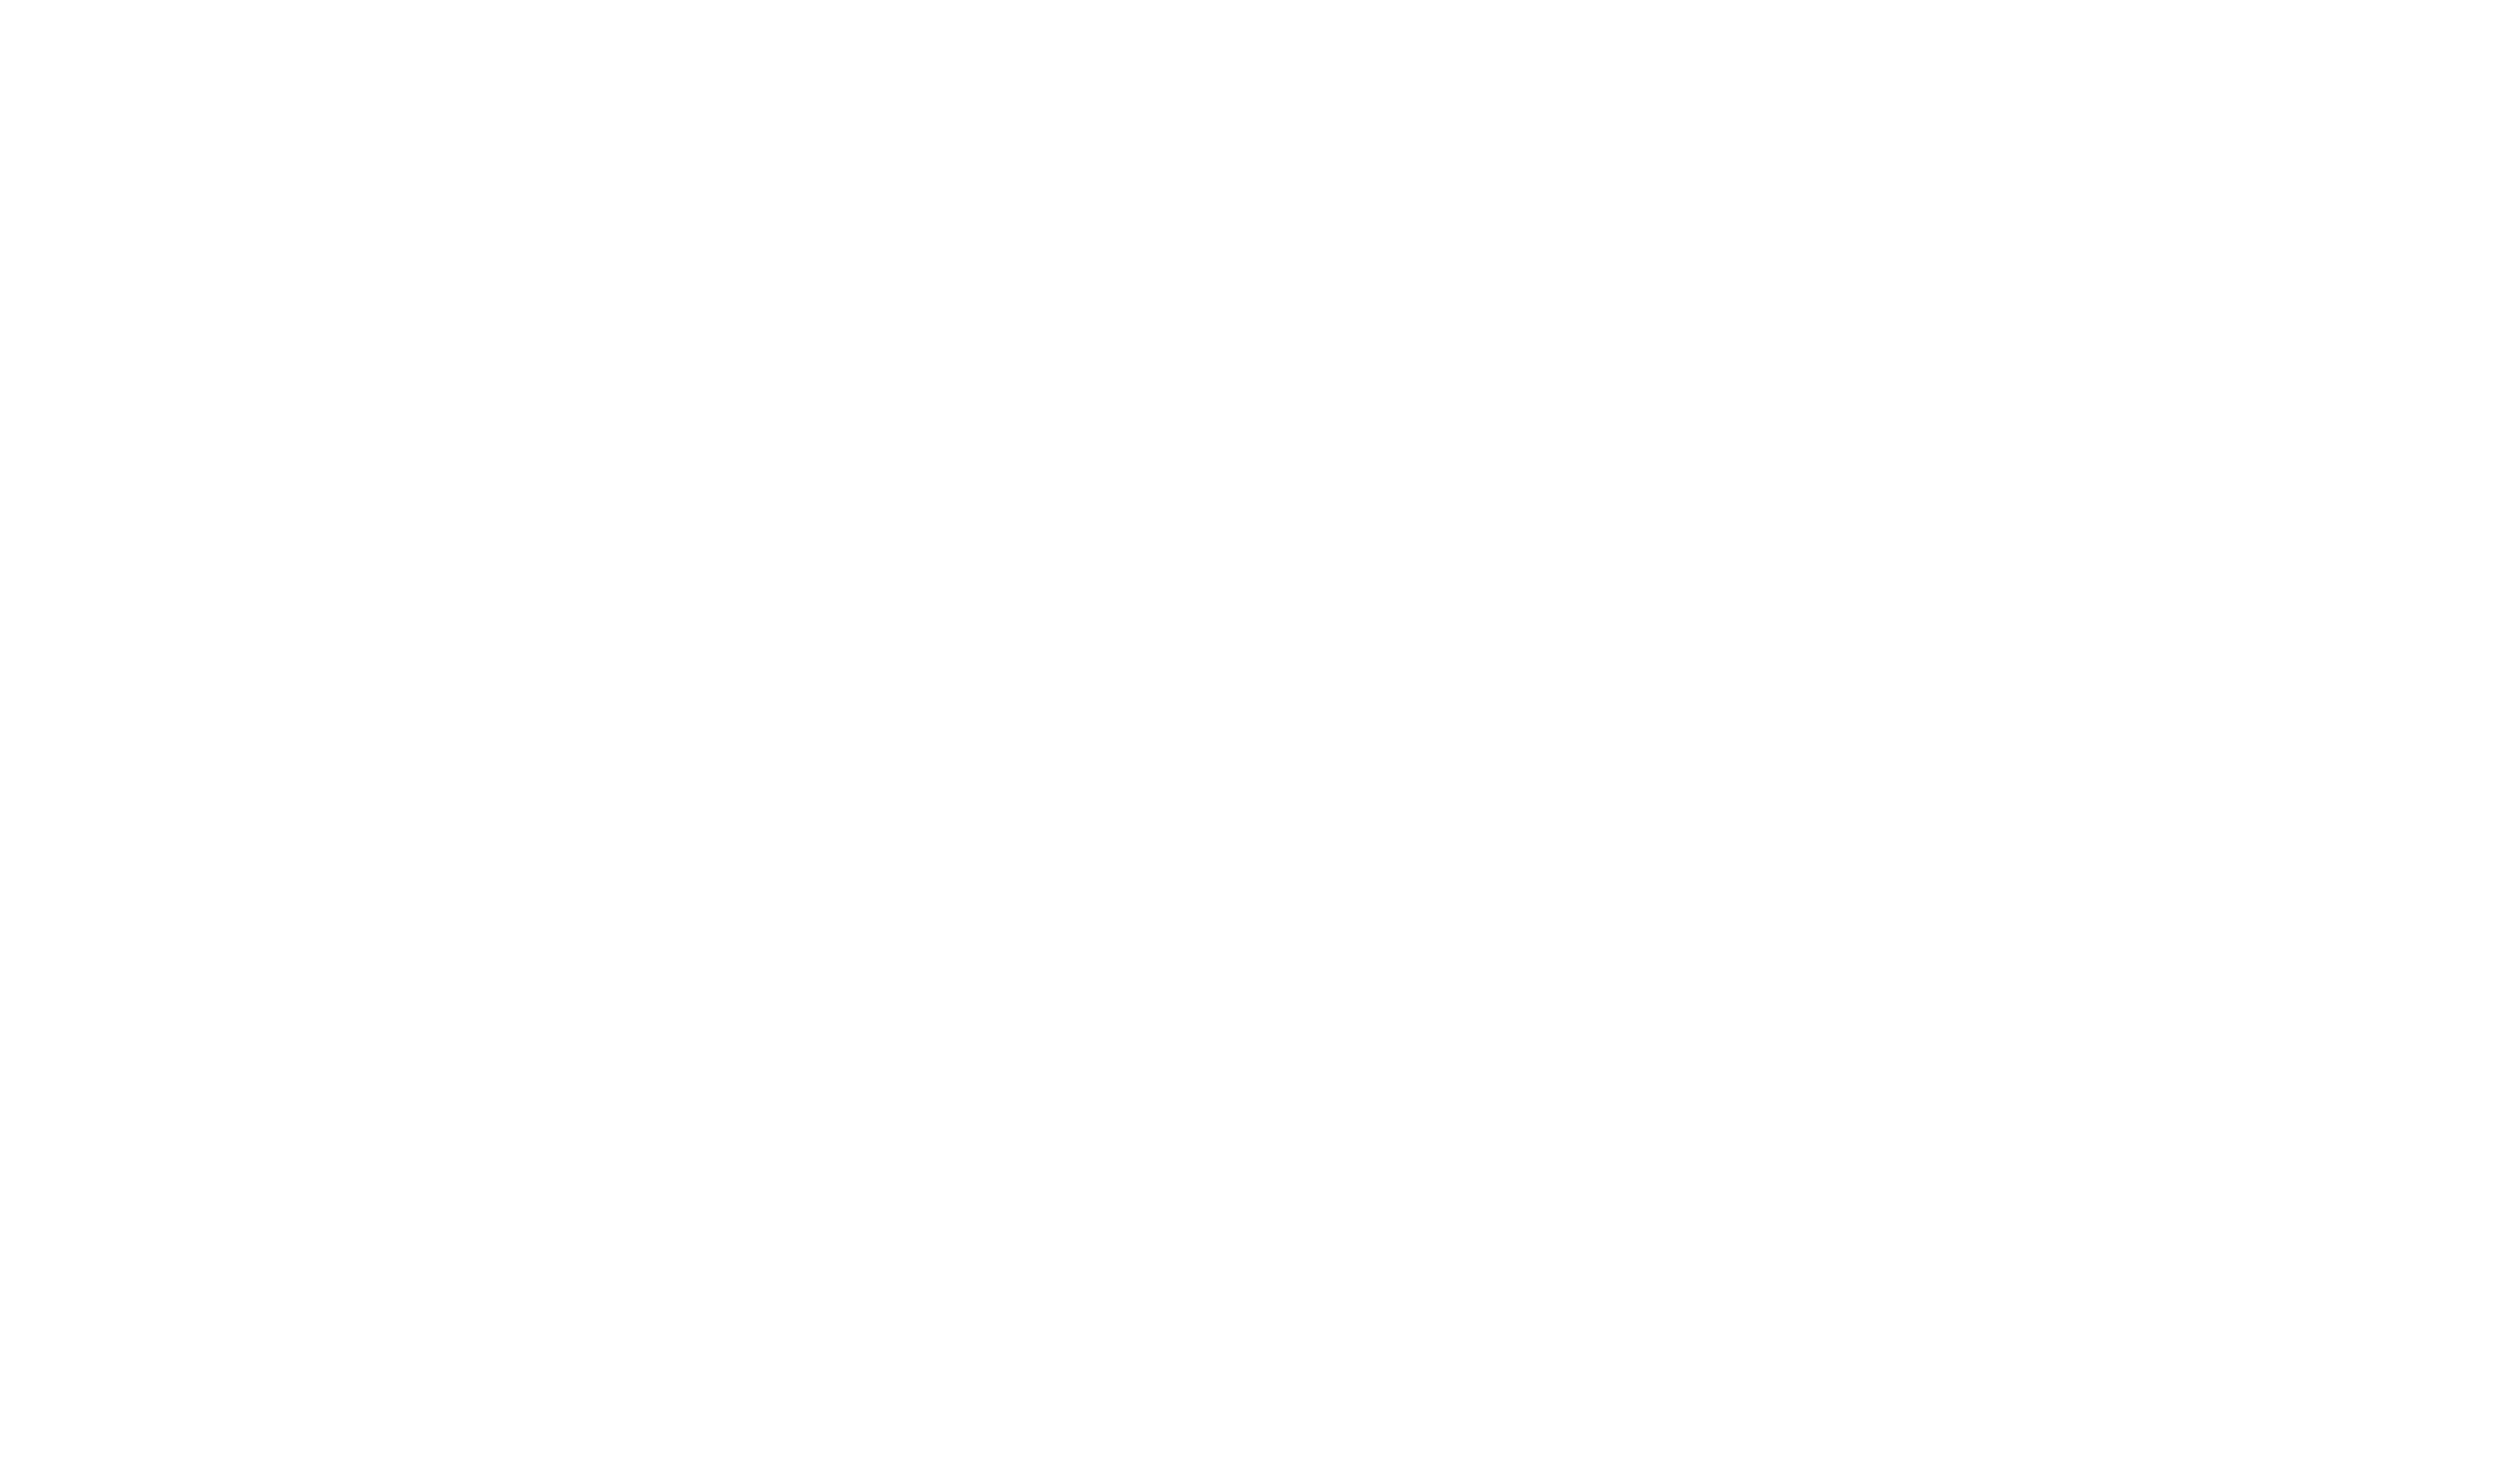 NAMI Central Texas – Providing education, support and